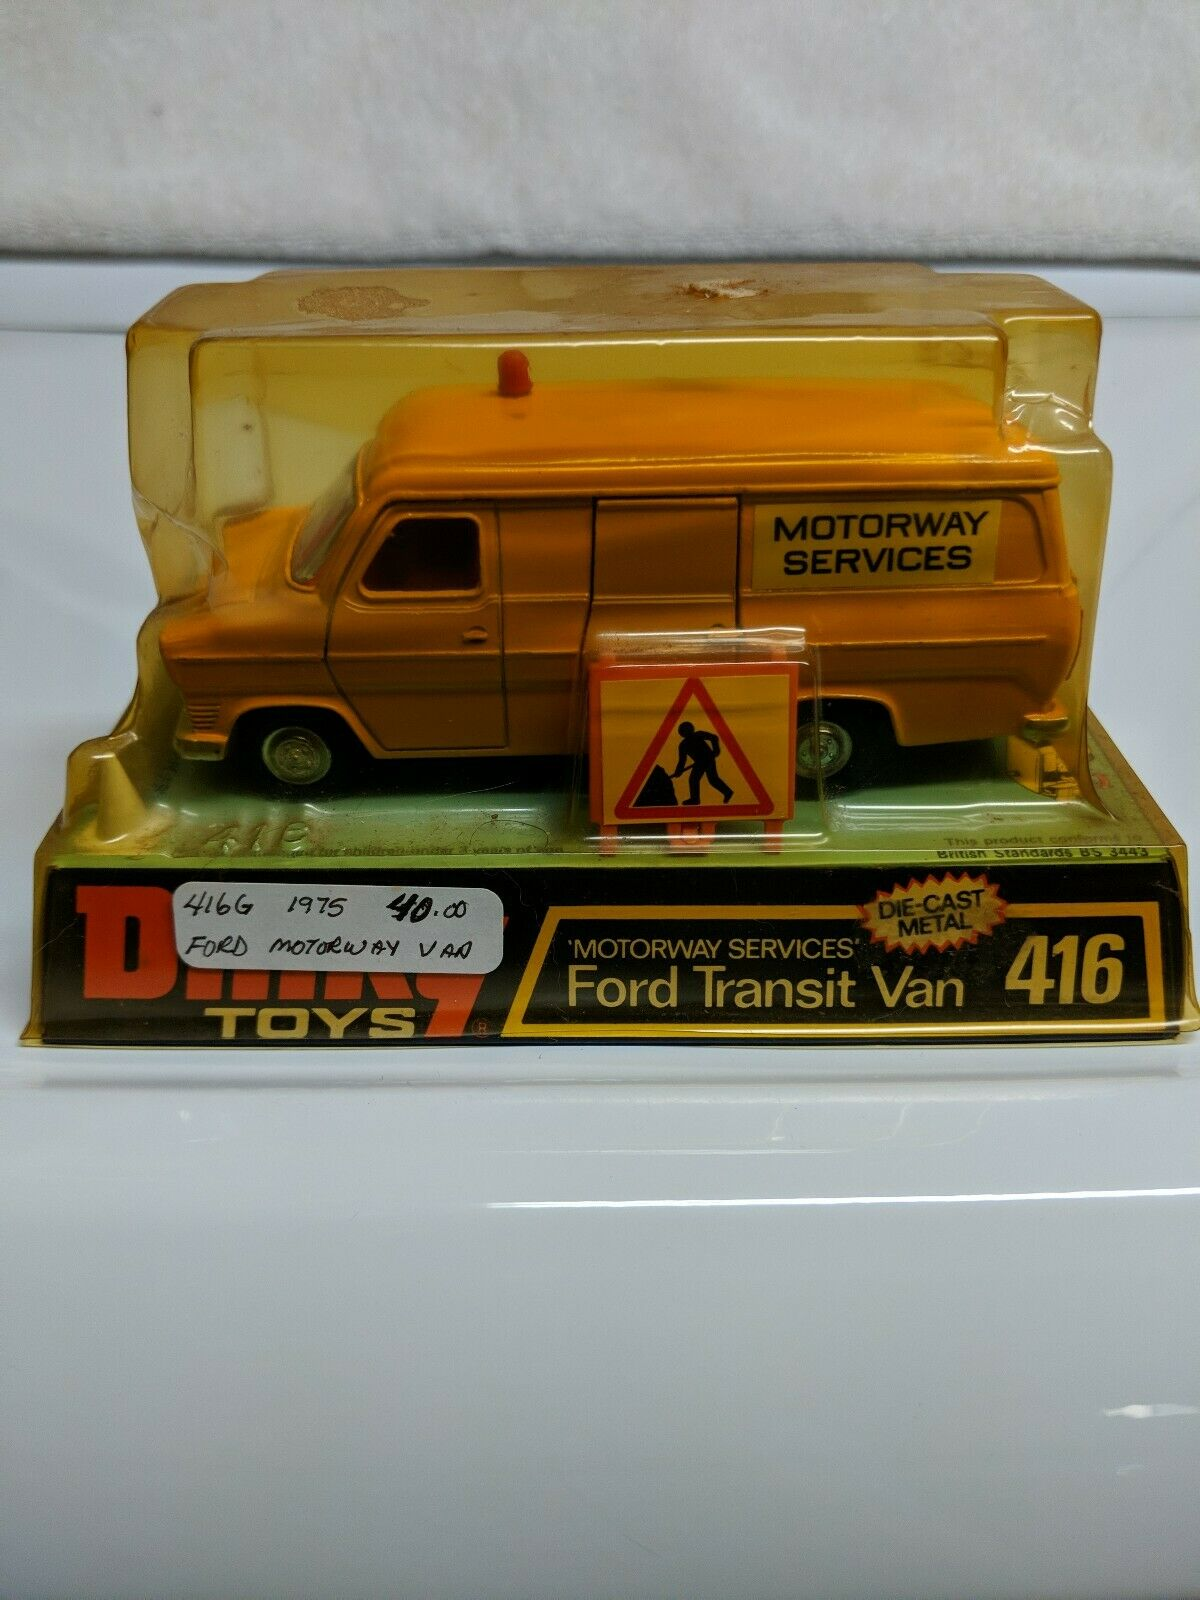 DINKY TOYS 416 FORD TRANSIT VAN Motorway Services jaune made in England